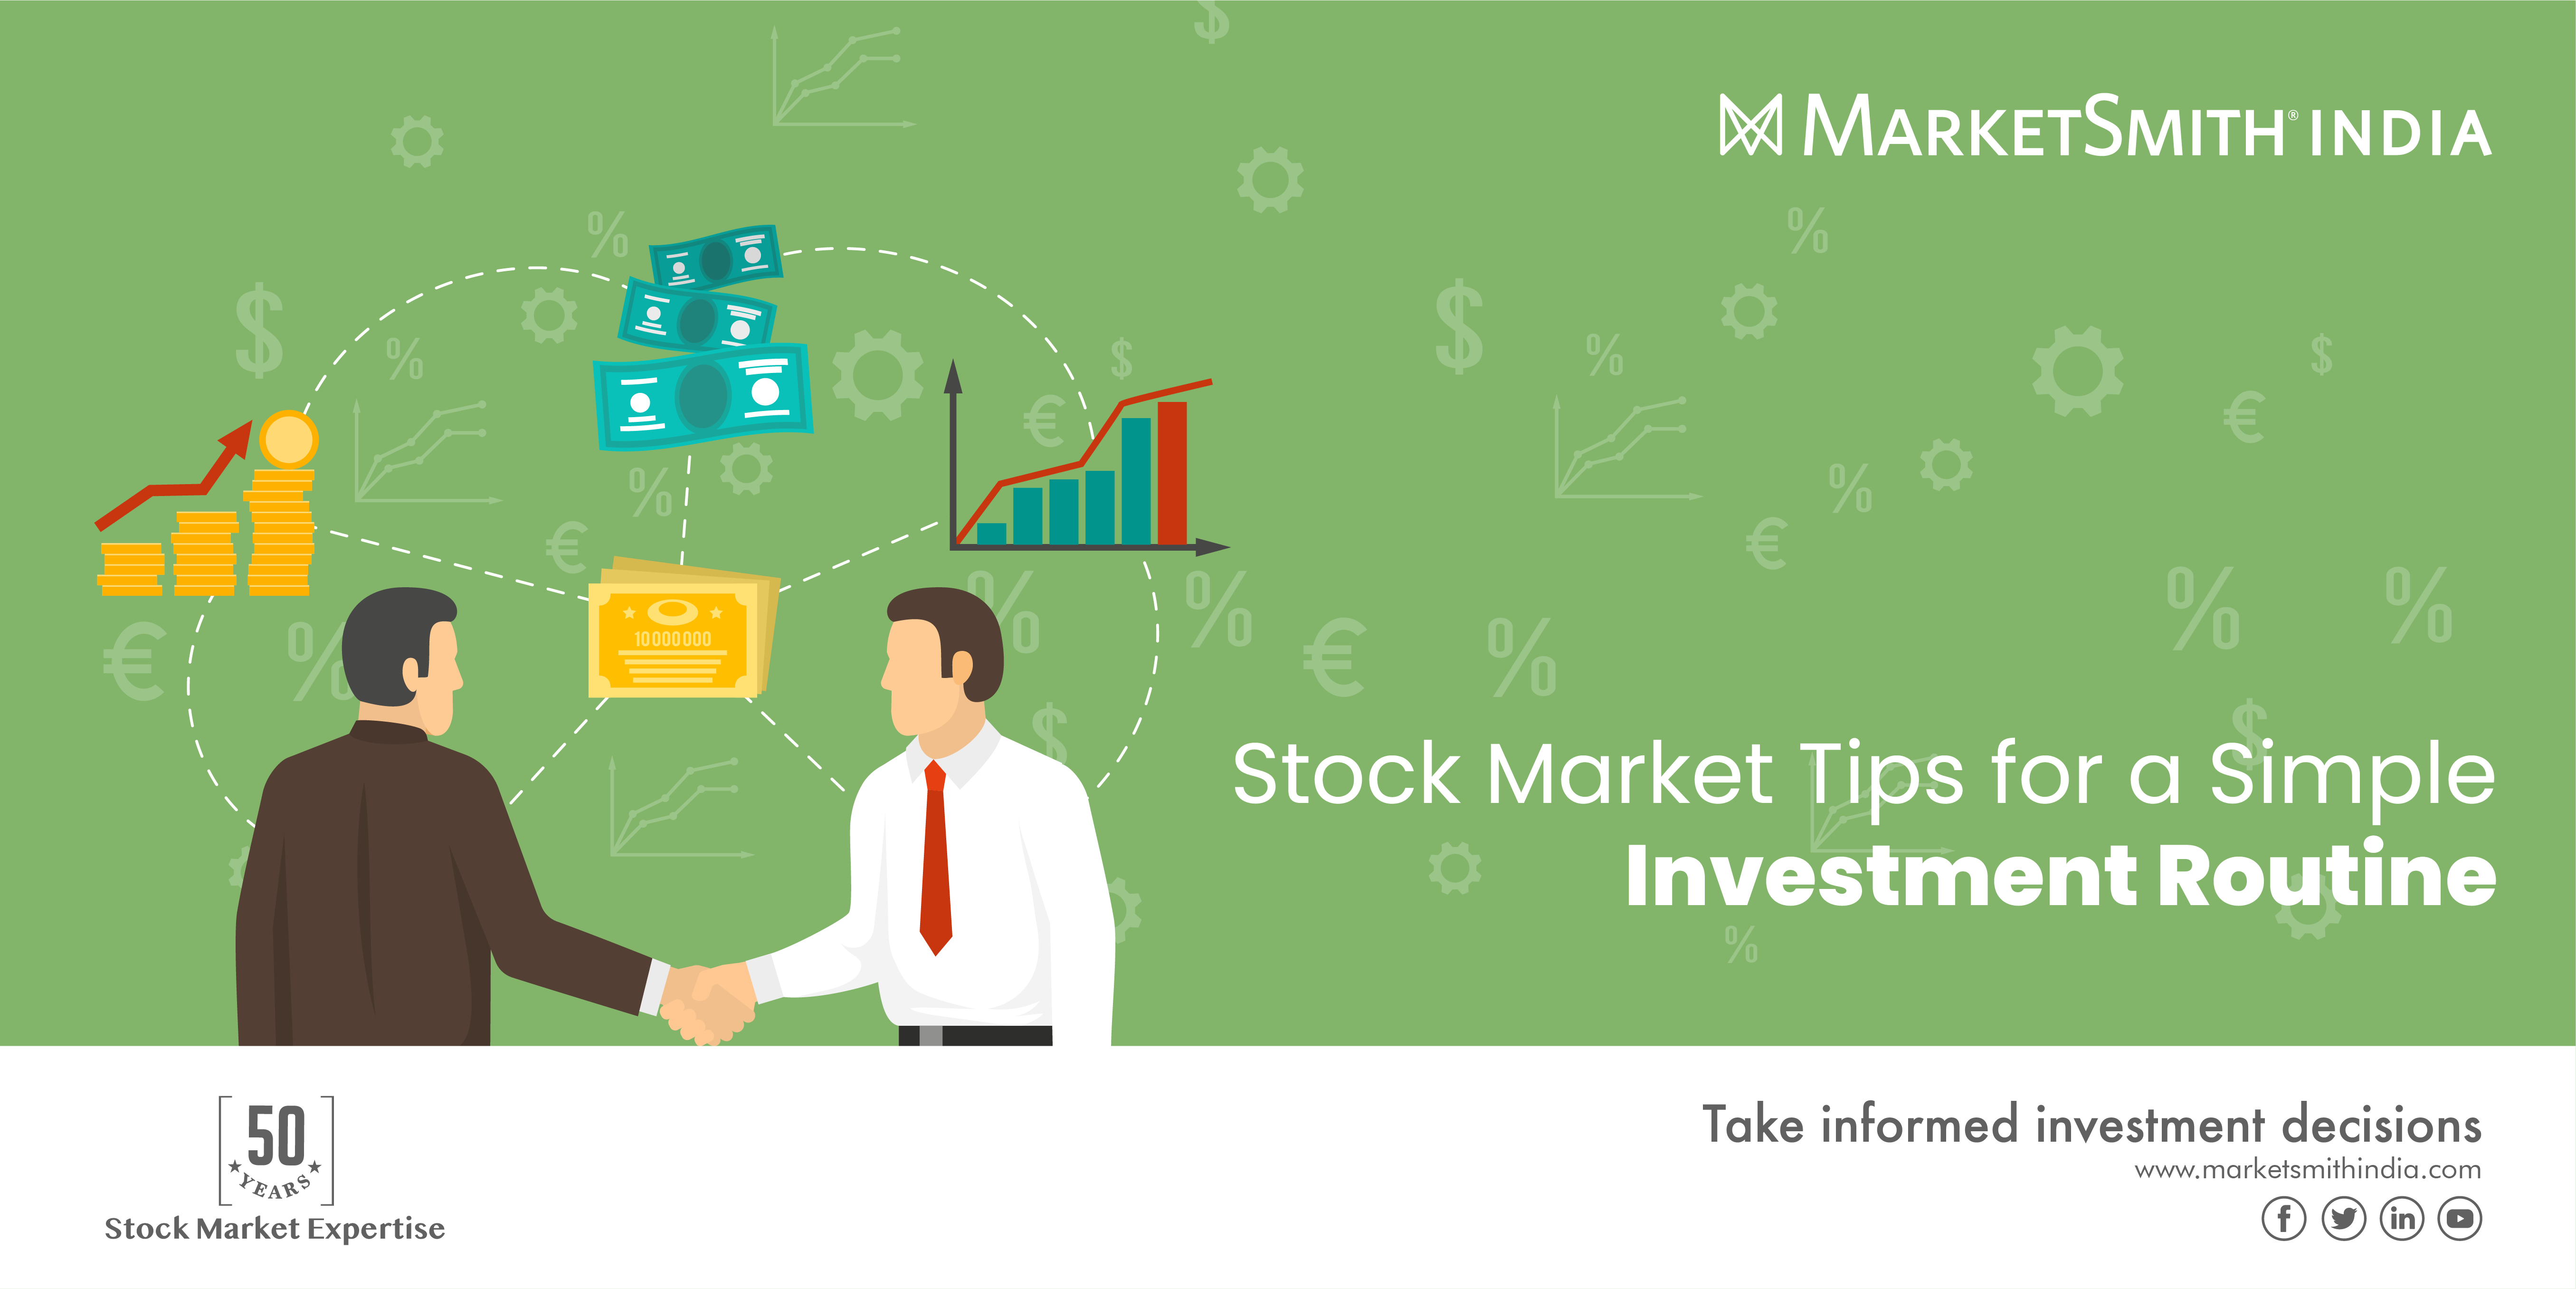 MarketSmithIndia_StockMarketTips